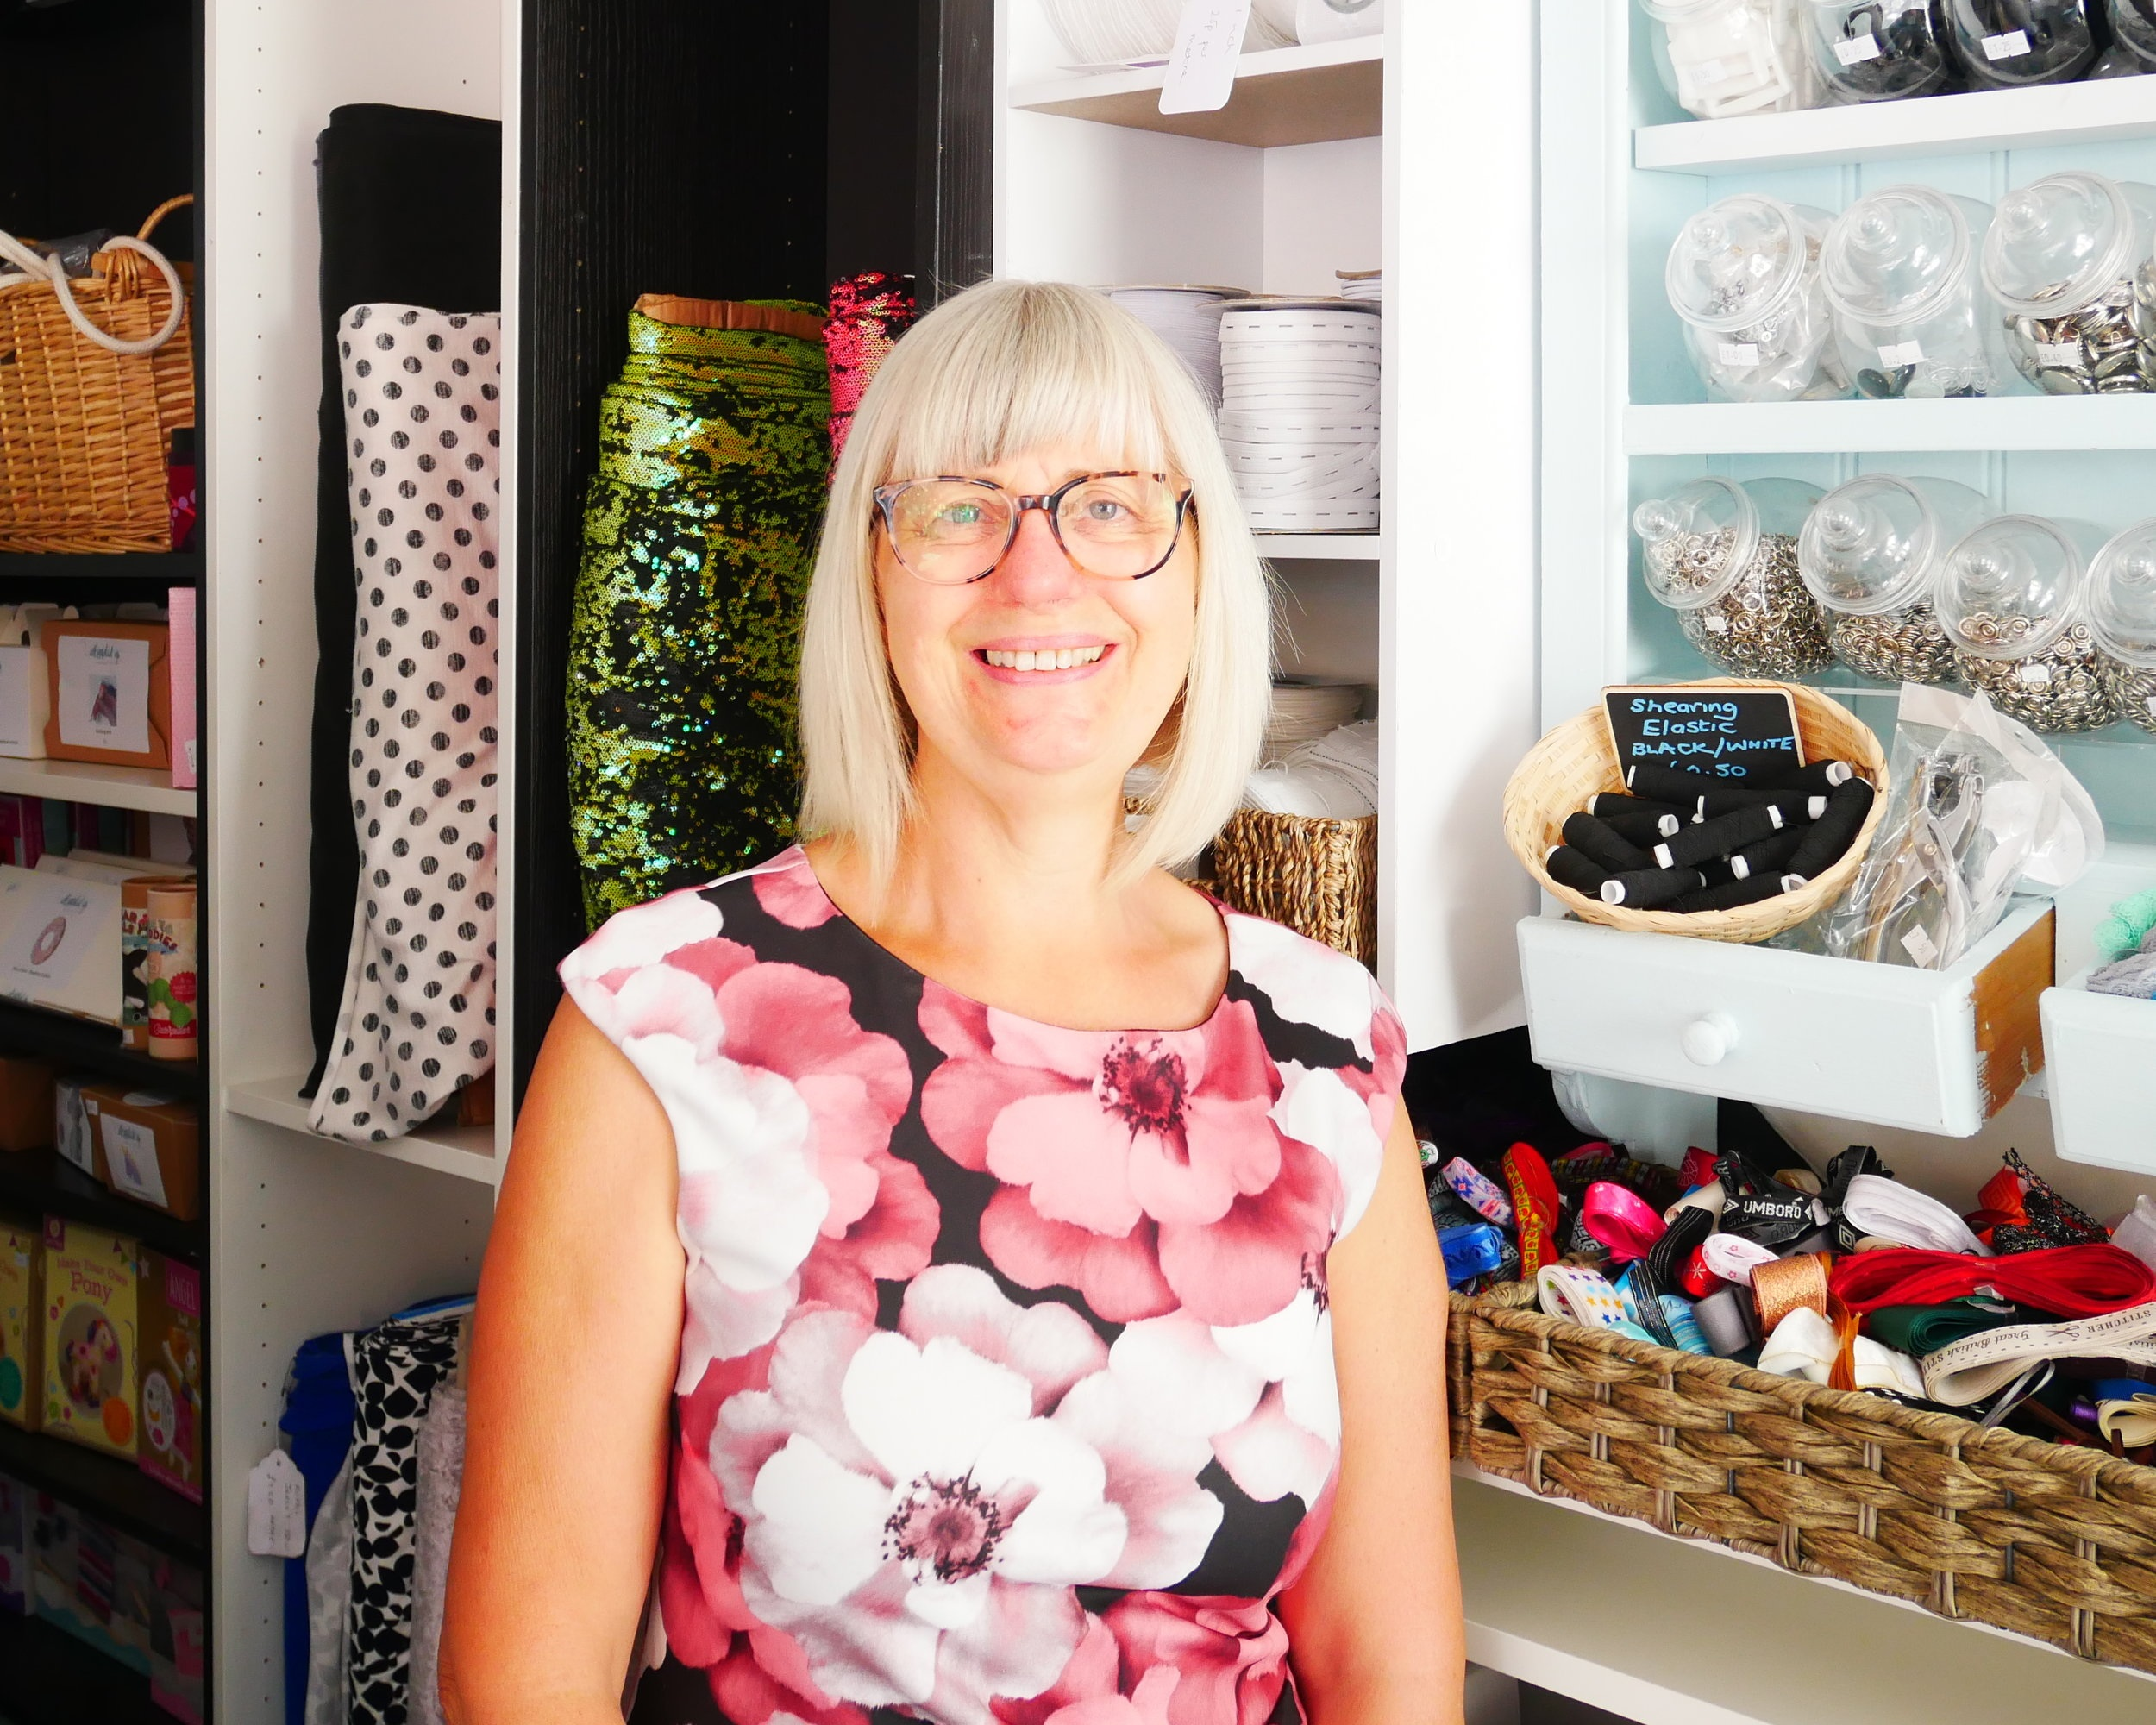 Wendy - Wendy has been working with me since the first shop opened at No.7 Court Street. Wendy works hard to keep the shop looking presentable and has played a key role in refurbishing the new shop.